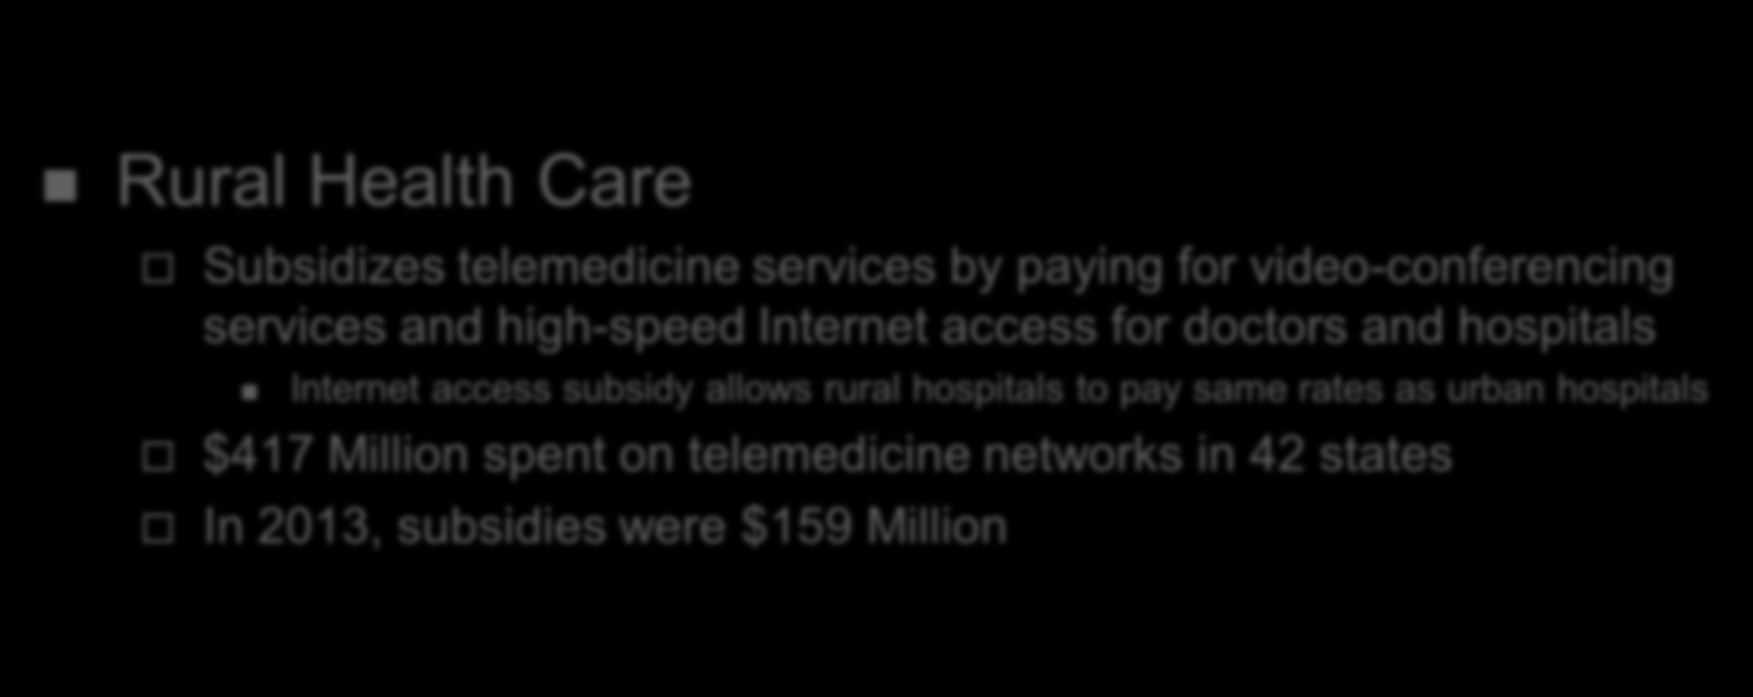 Universal Service in Telecom Act Rural Health Care Subsidizes telemedicine services by paying for video-conferencing services and high-speed Internet access for doctors and